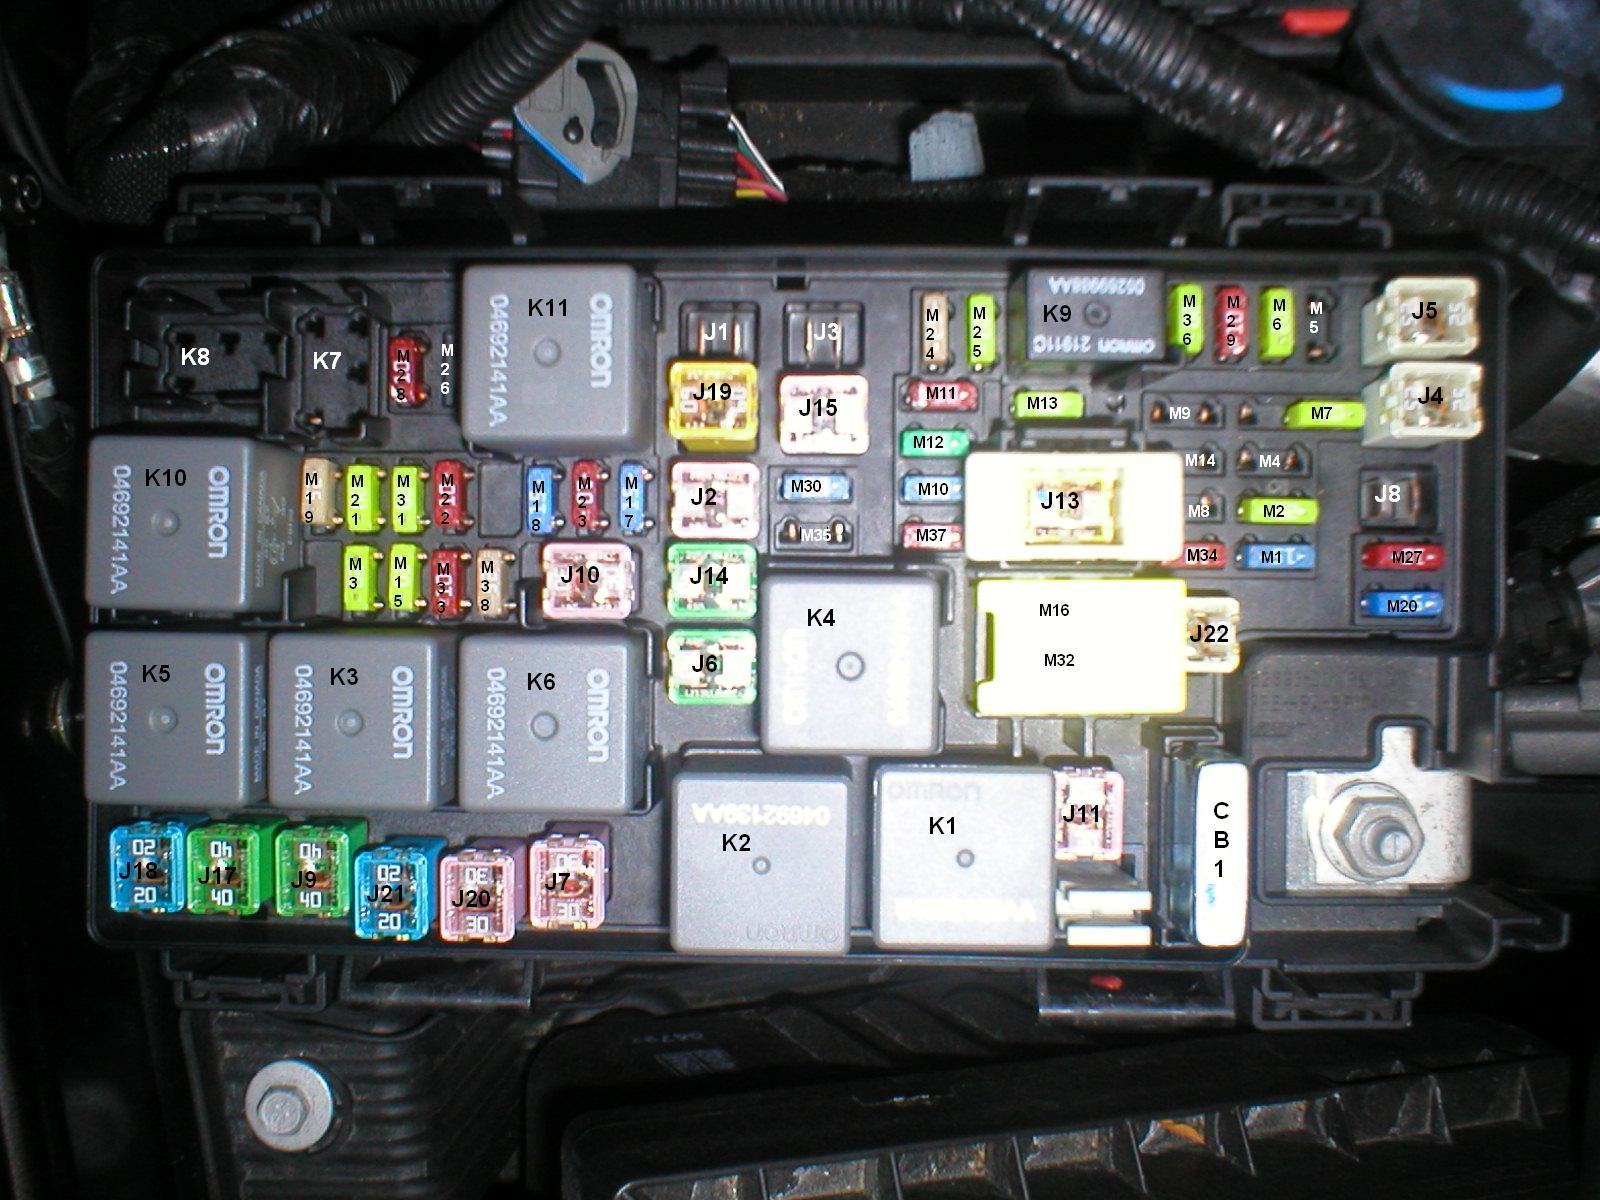 hight resolution of jeep jk fuse box map layout diagram jeepforum com rh jeepforum com 1991 jeep wrangler fuse